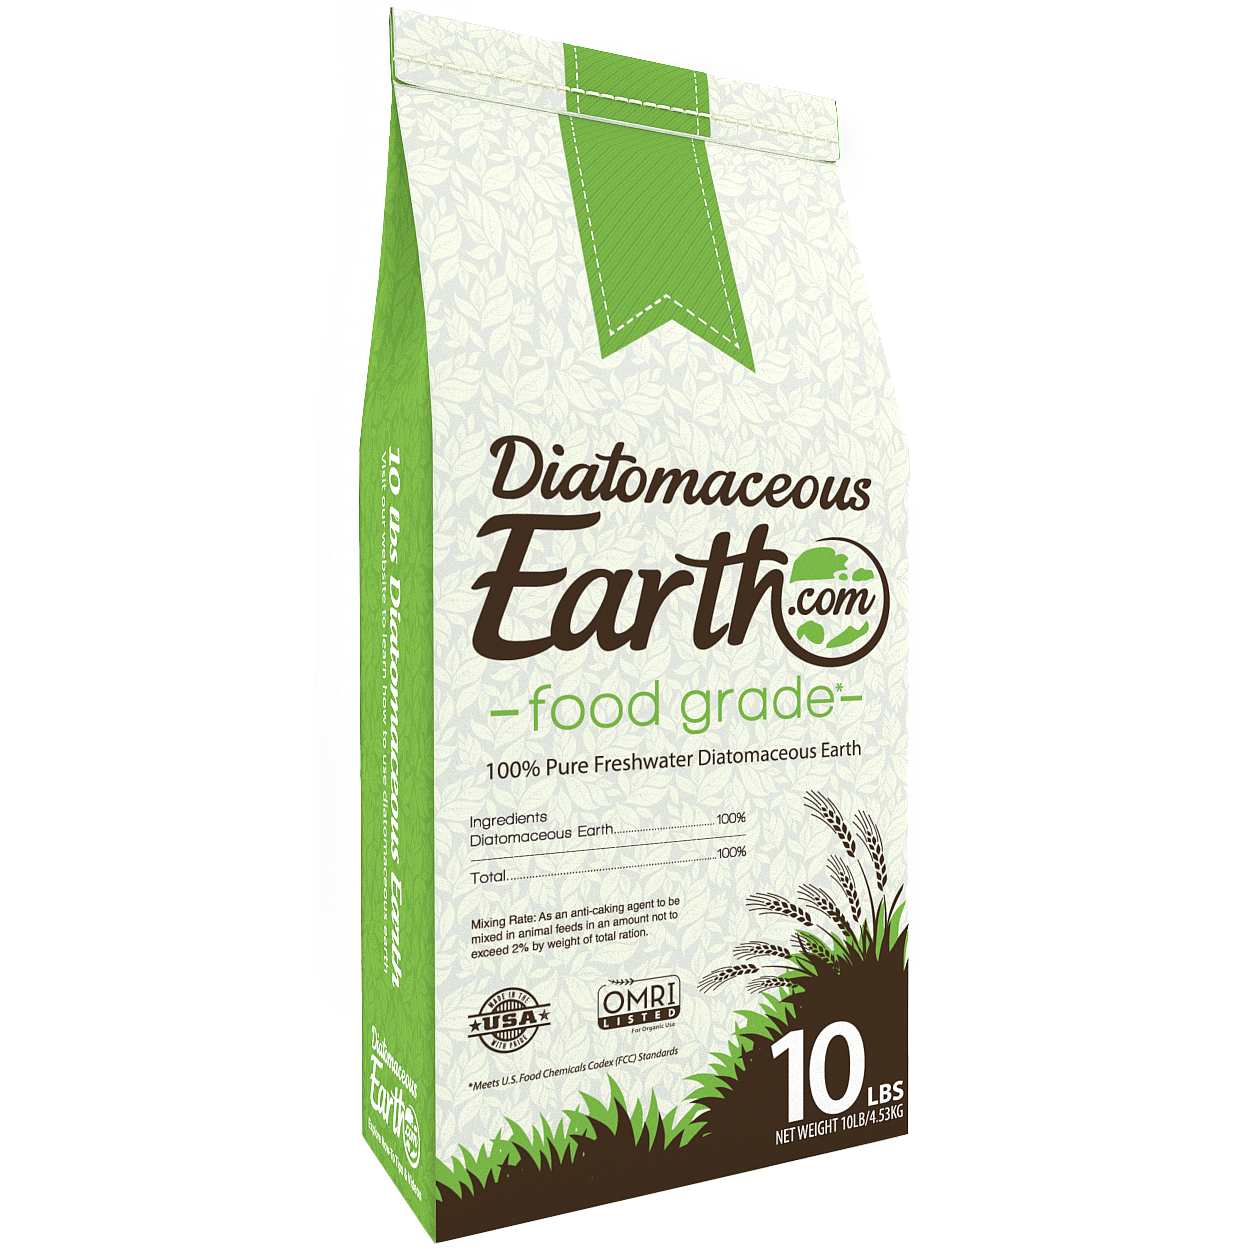 Diatomaceous earth food grade 10 lb patio - How to use diatomaceous earth in the garden ...